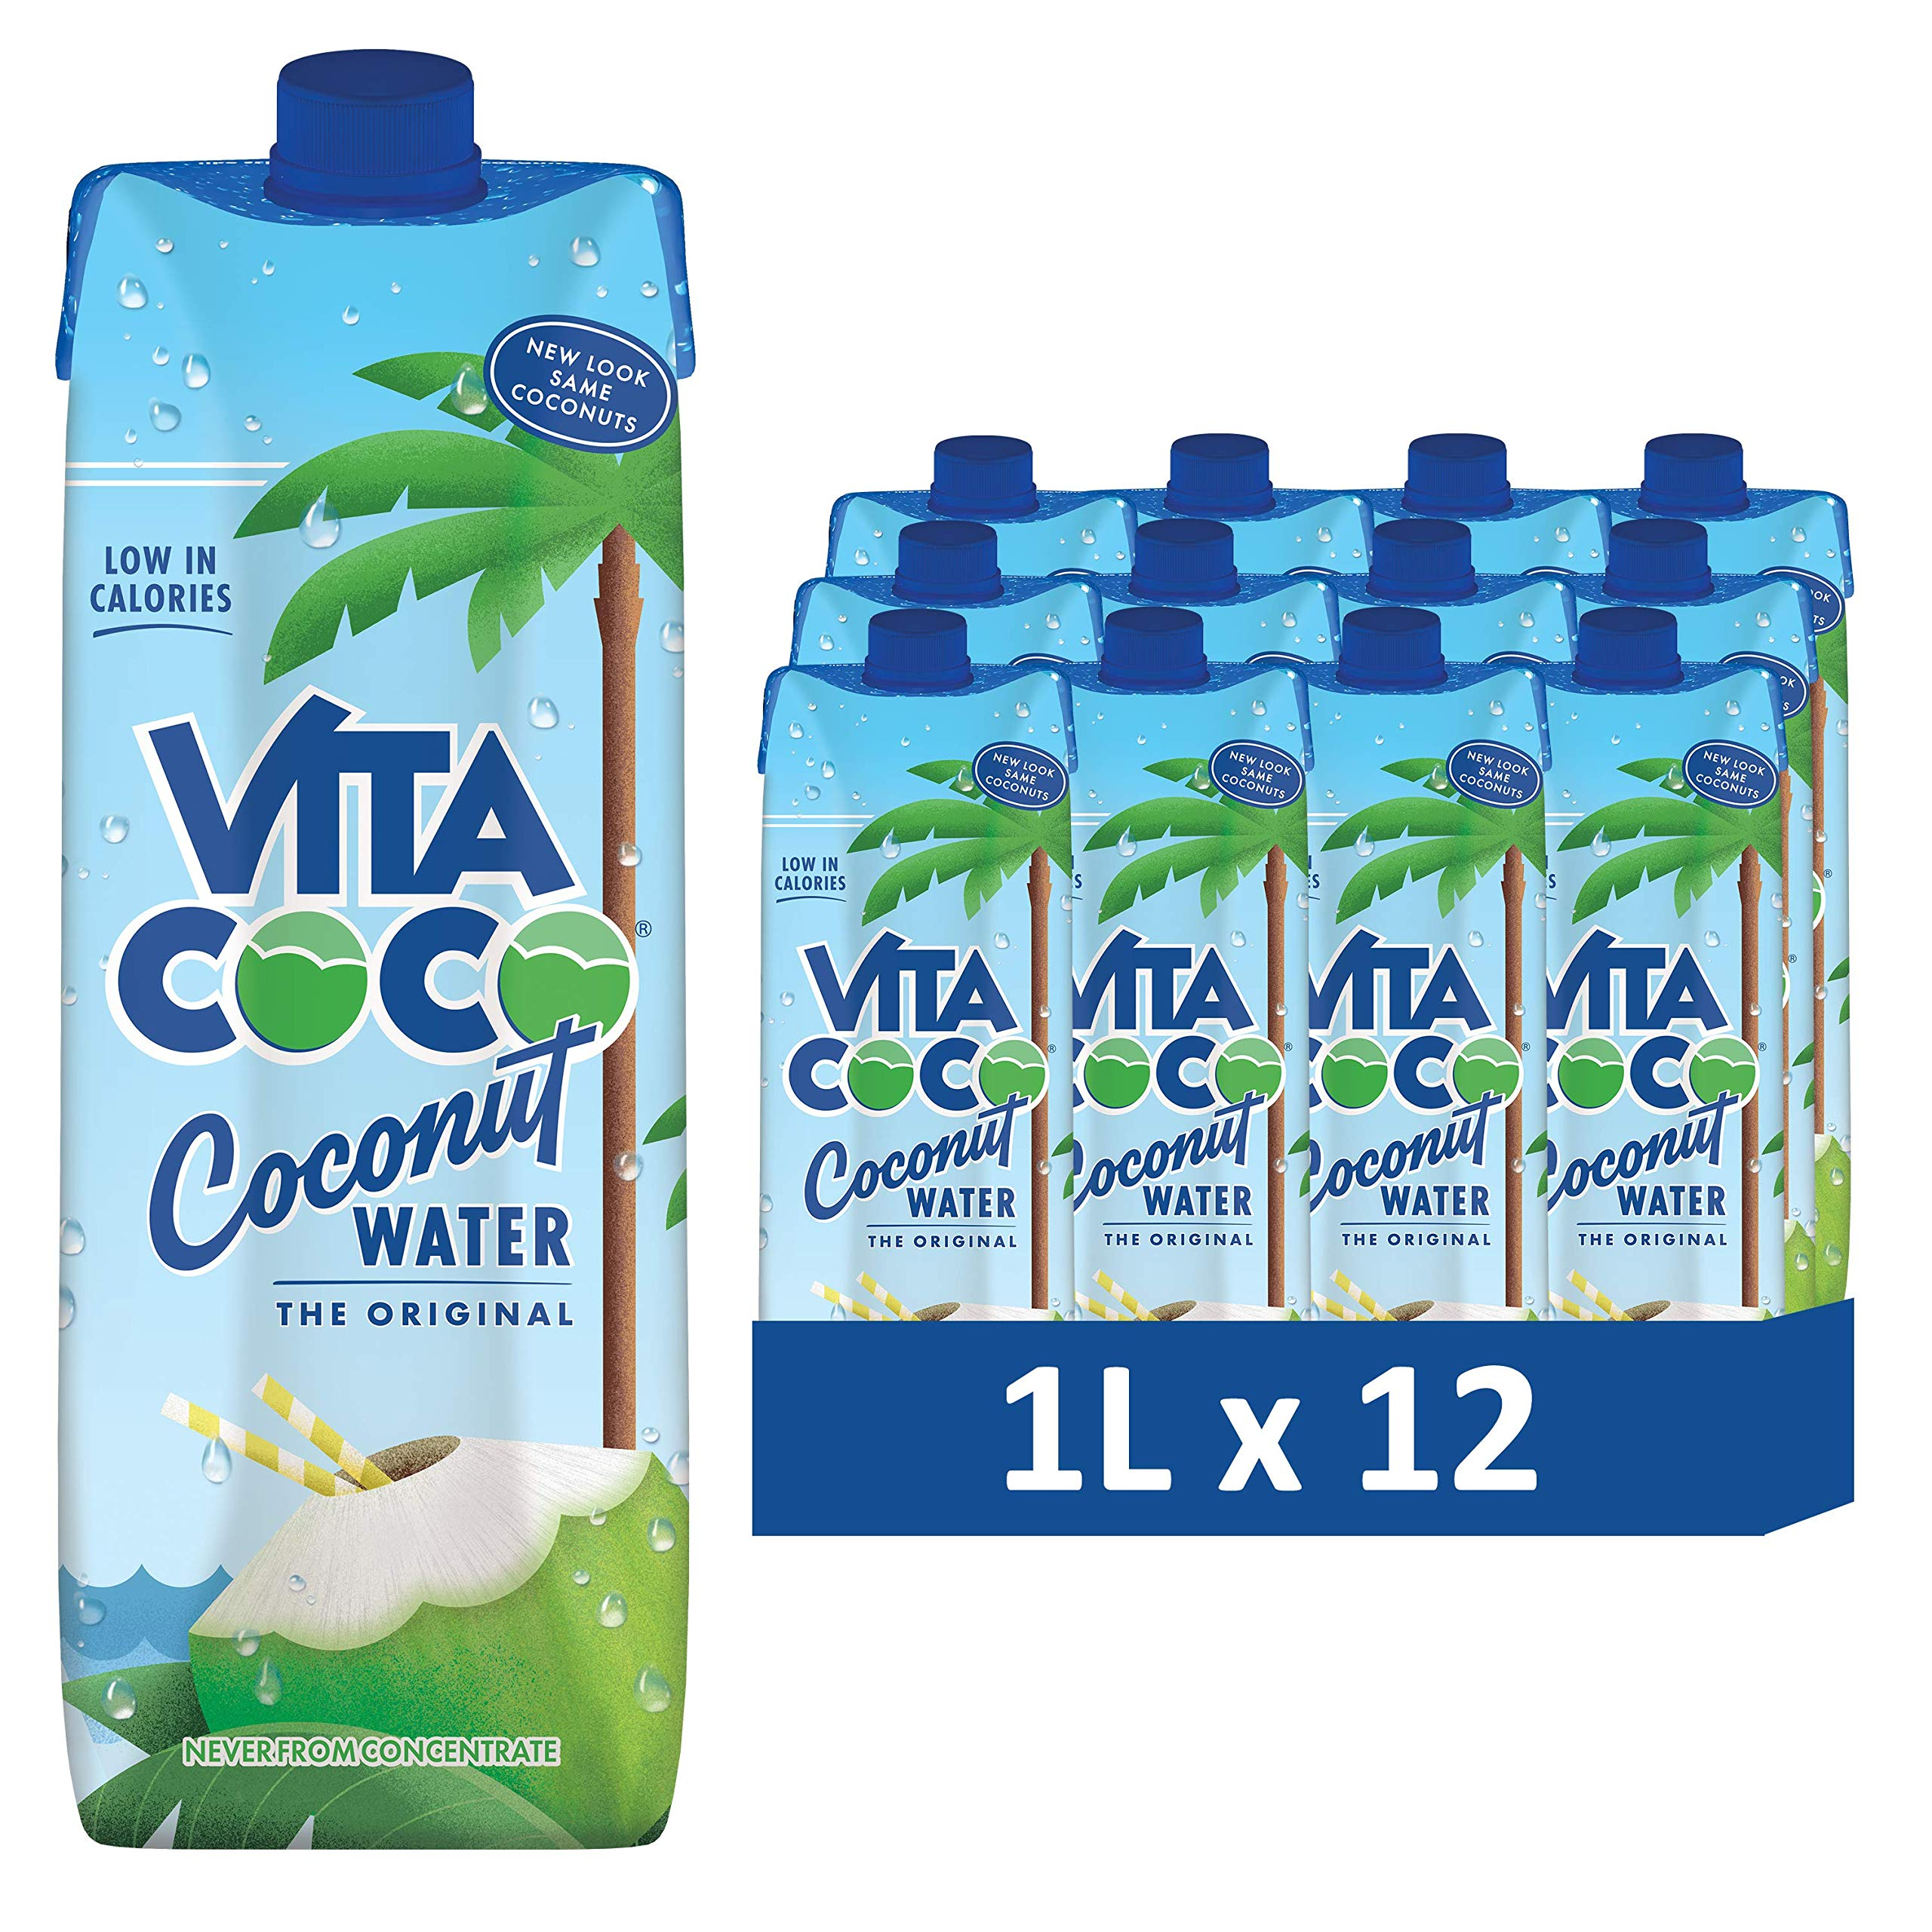 Vita Coco - Pure Coconut Water (1L x 12) - Naturally Hydrating - Packed With Electrolytes - Gluten Free - Full Of Vitamin C & Potassium